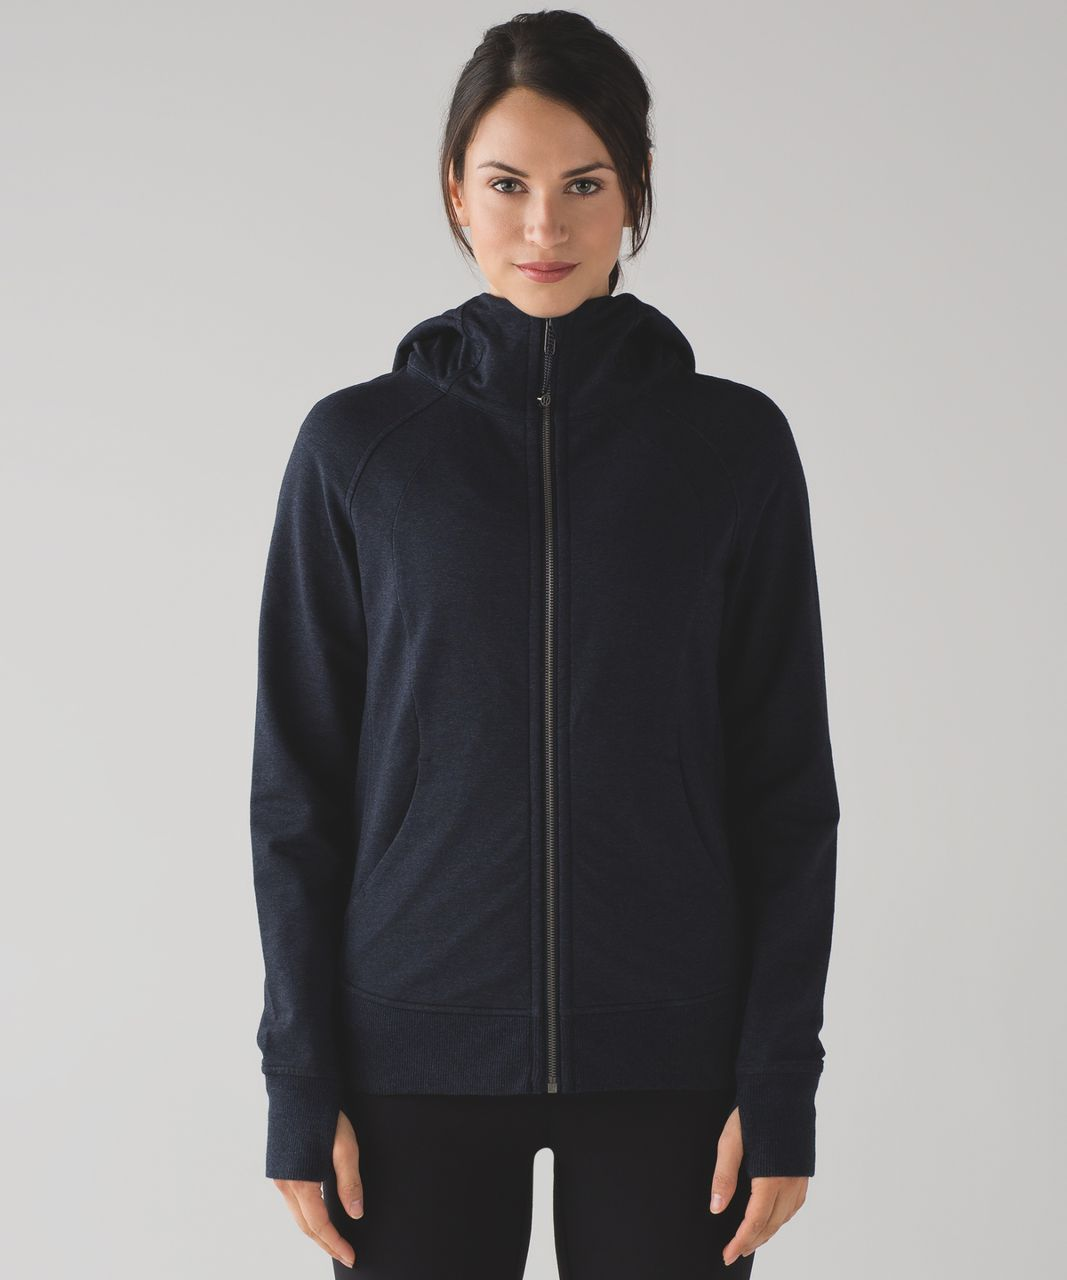 Lululemon Scuba Hoodie IV (Terry) - Heathered Naval Blue